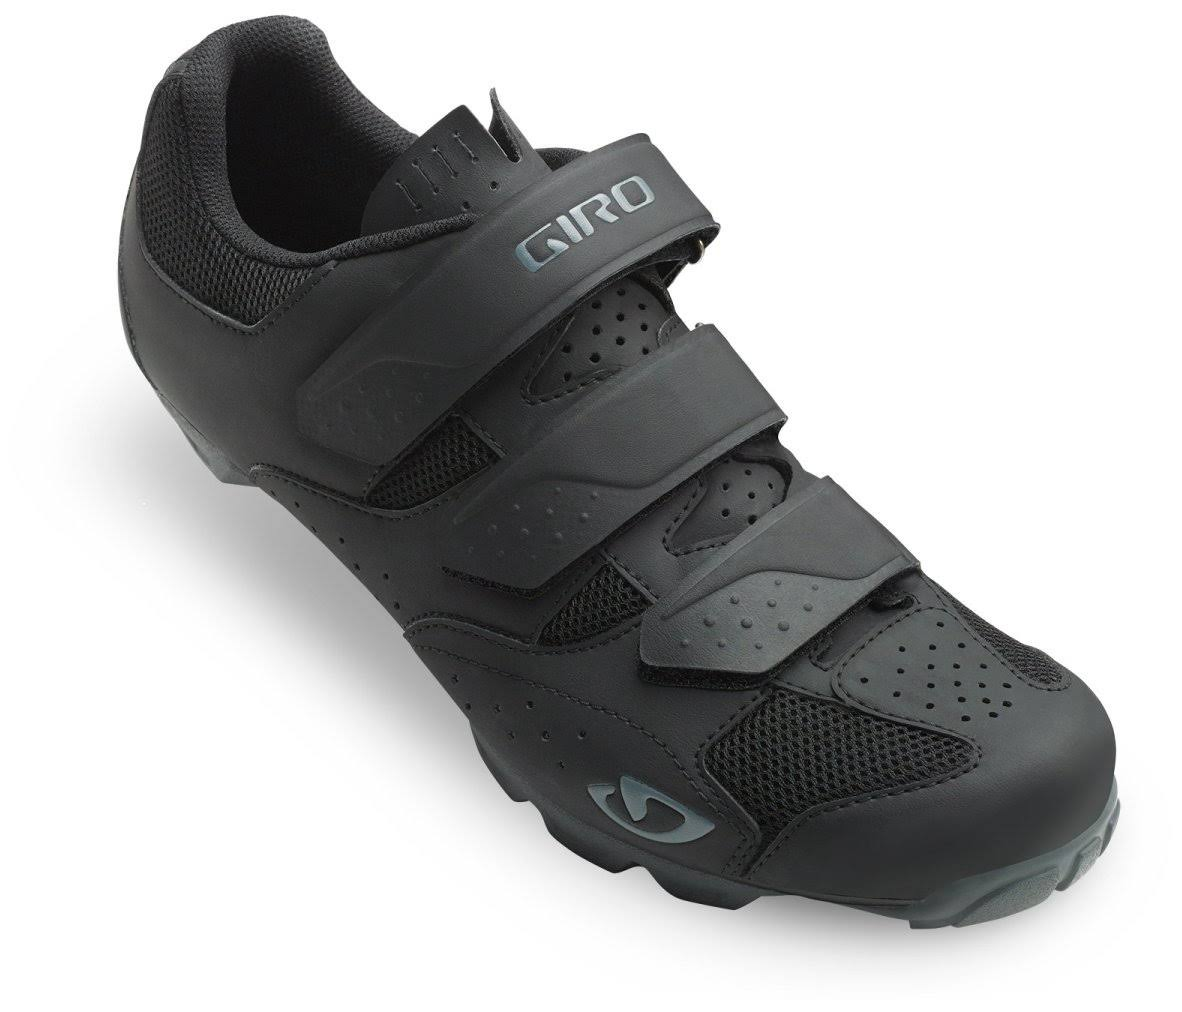 Giro Carbide R II Shoes 44 Black-Charcoal